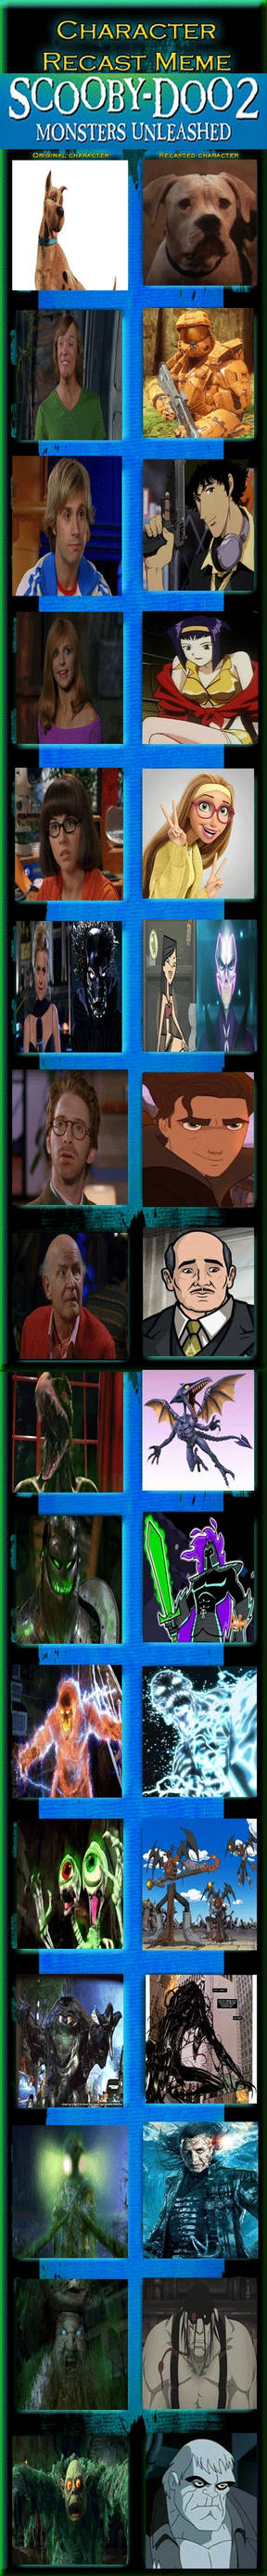 Scooby Doo 2 Monsters Unleashed Recast By Jackskellington416 On Deviantart